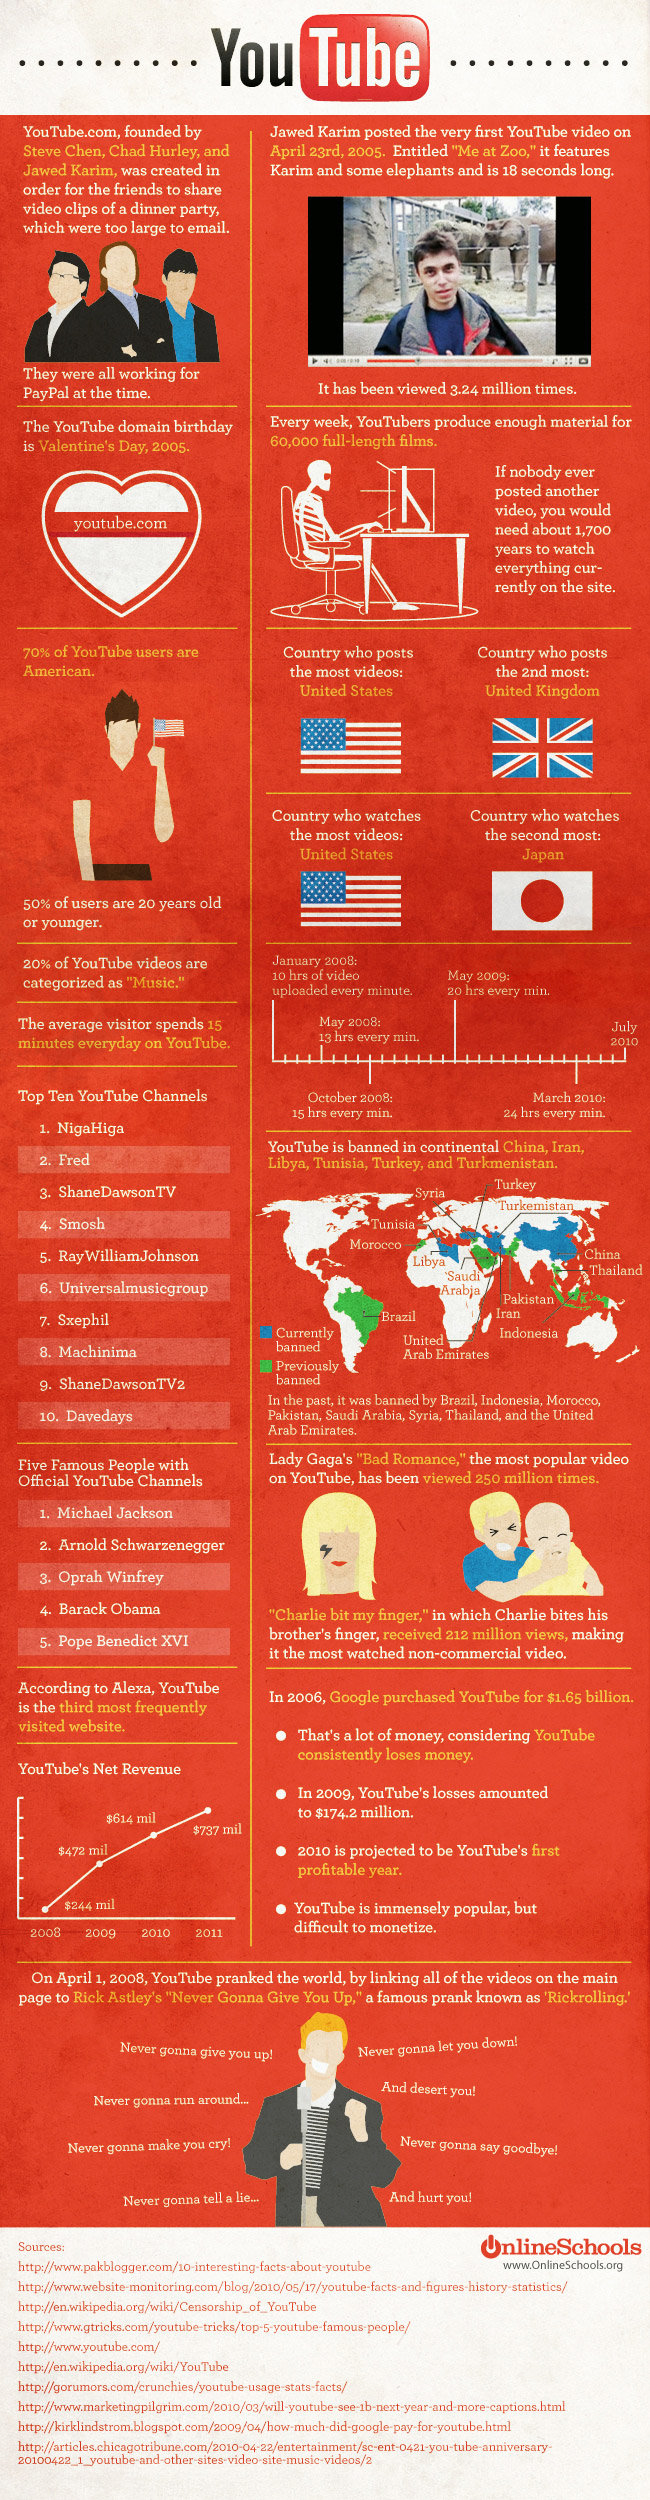 youtube - never gonna give you up: youtube's path to world domination [infographic]